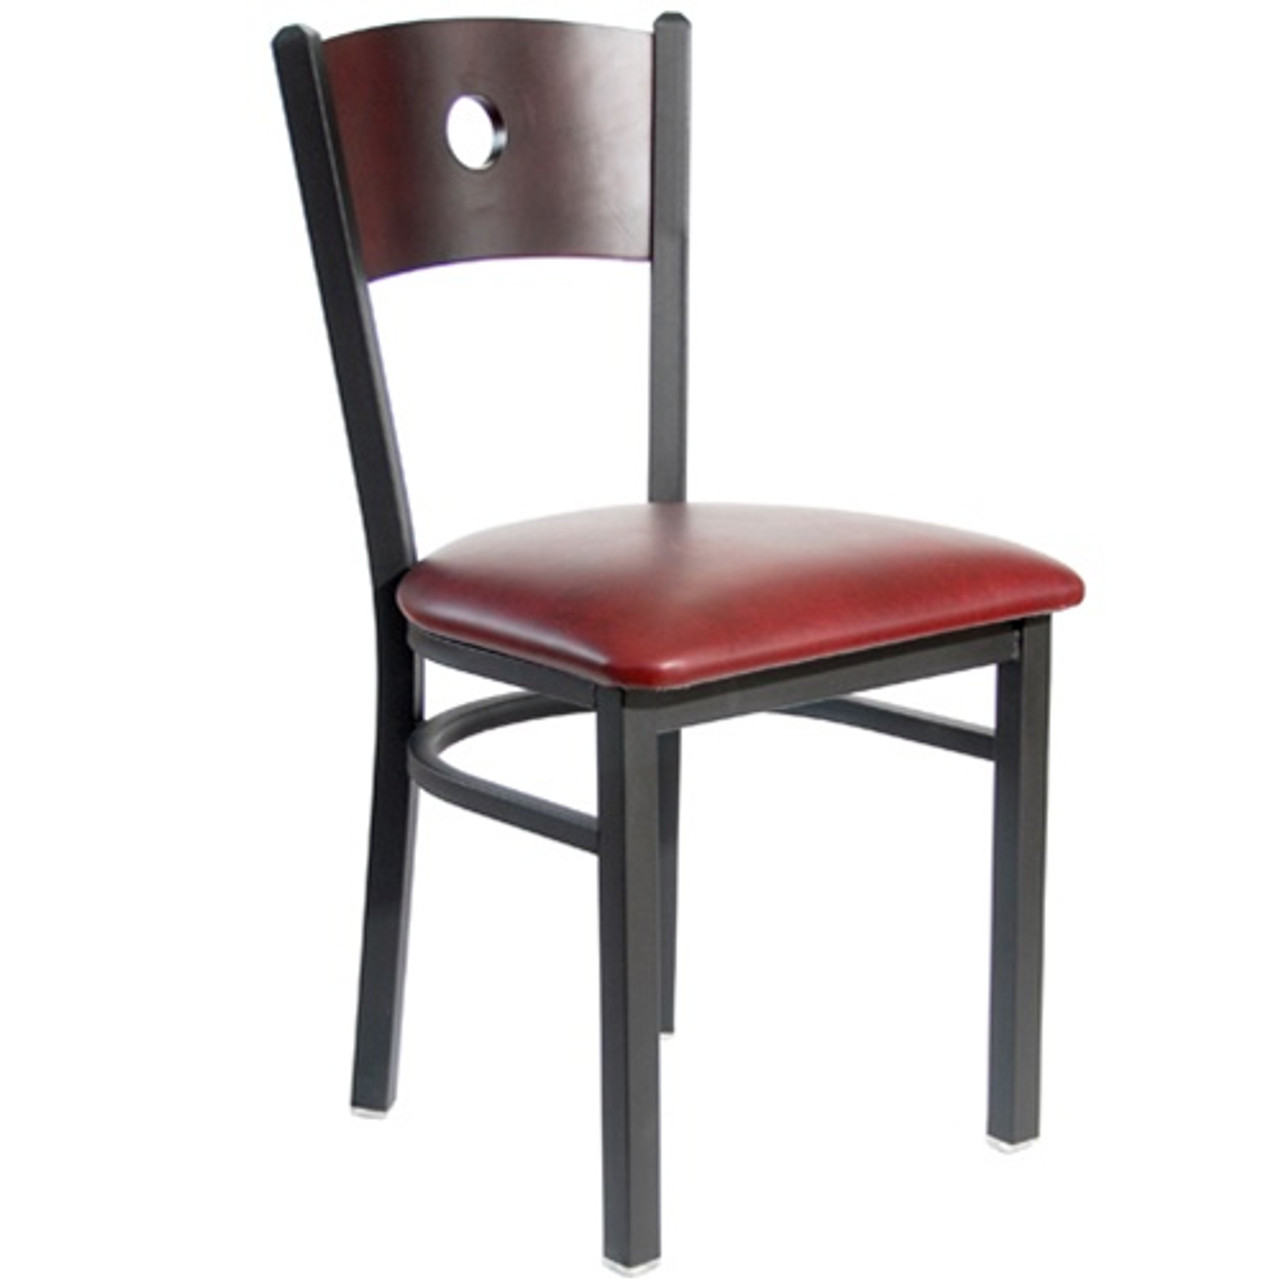 Bfm Seating Darby Black Metal Circle Wood Back Restaurant Chair With Vinyl Seat 2152cblv Sb Bfms